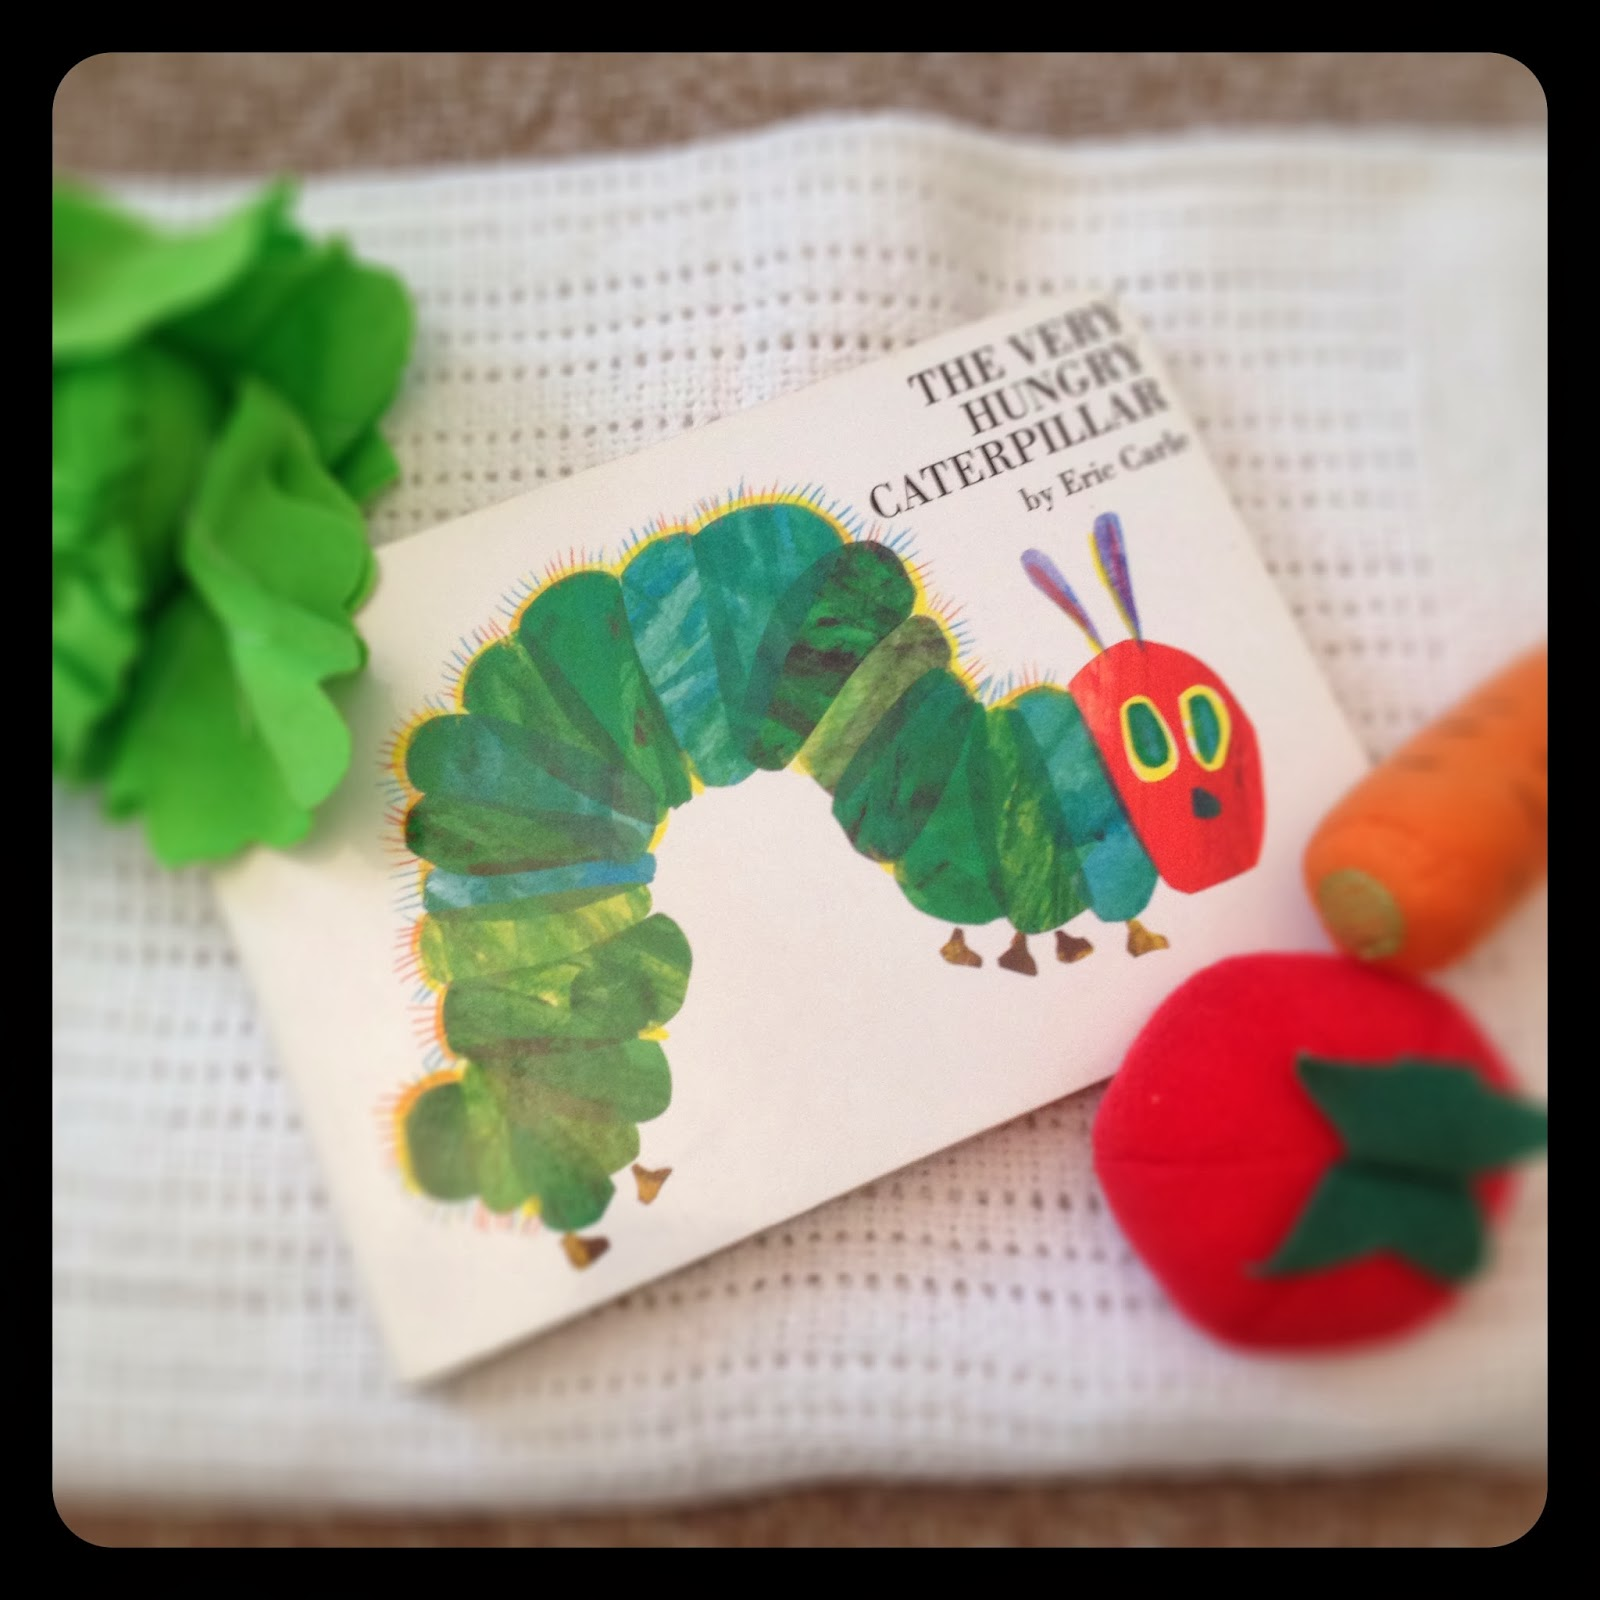 mamasVIB | V. I. BOOKCLUB: Build a classic library for kids (The Very Hungry Caterpillar), The Hungry caterpillar | Baby books | classic children's stories | V. I. BOOKCLUB | Build a classic library | mamasVIB